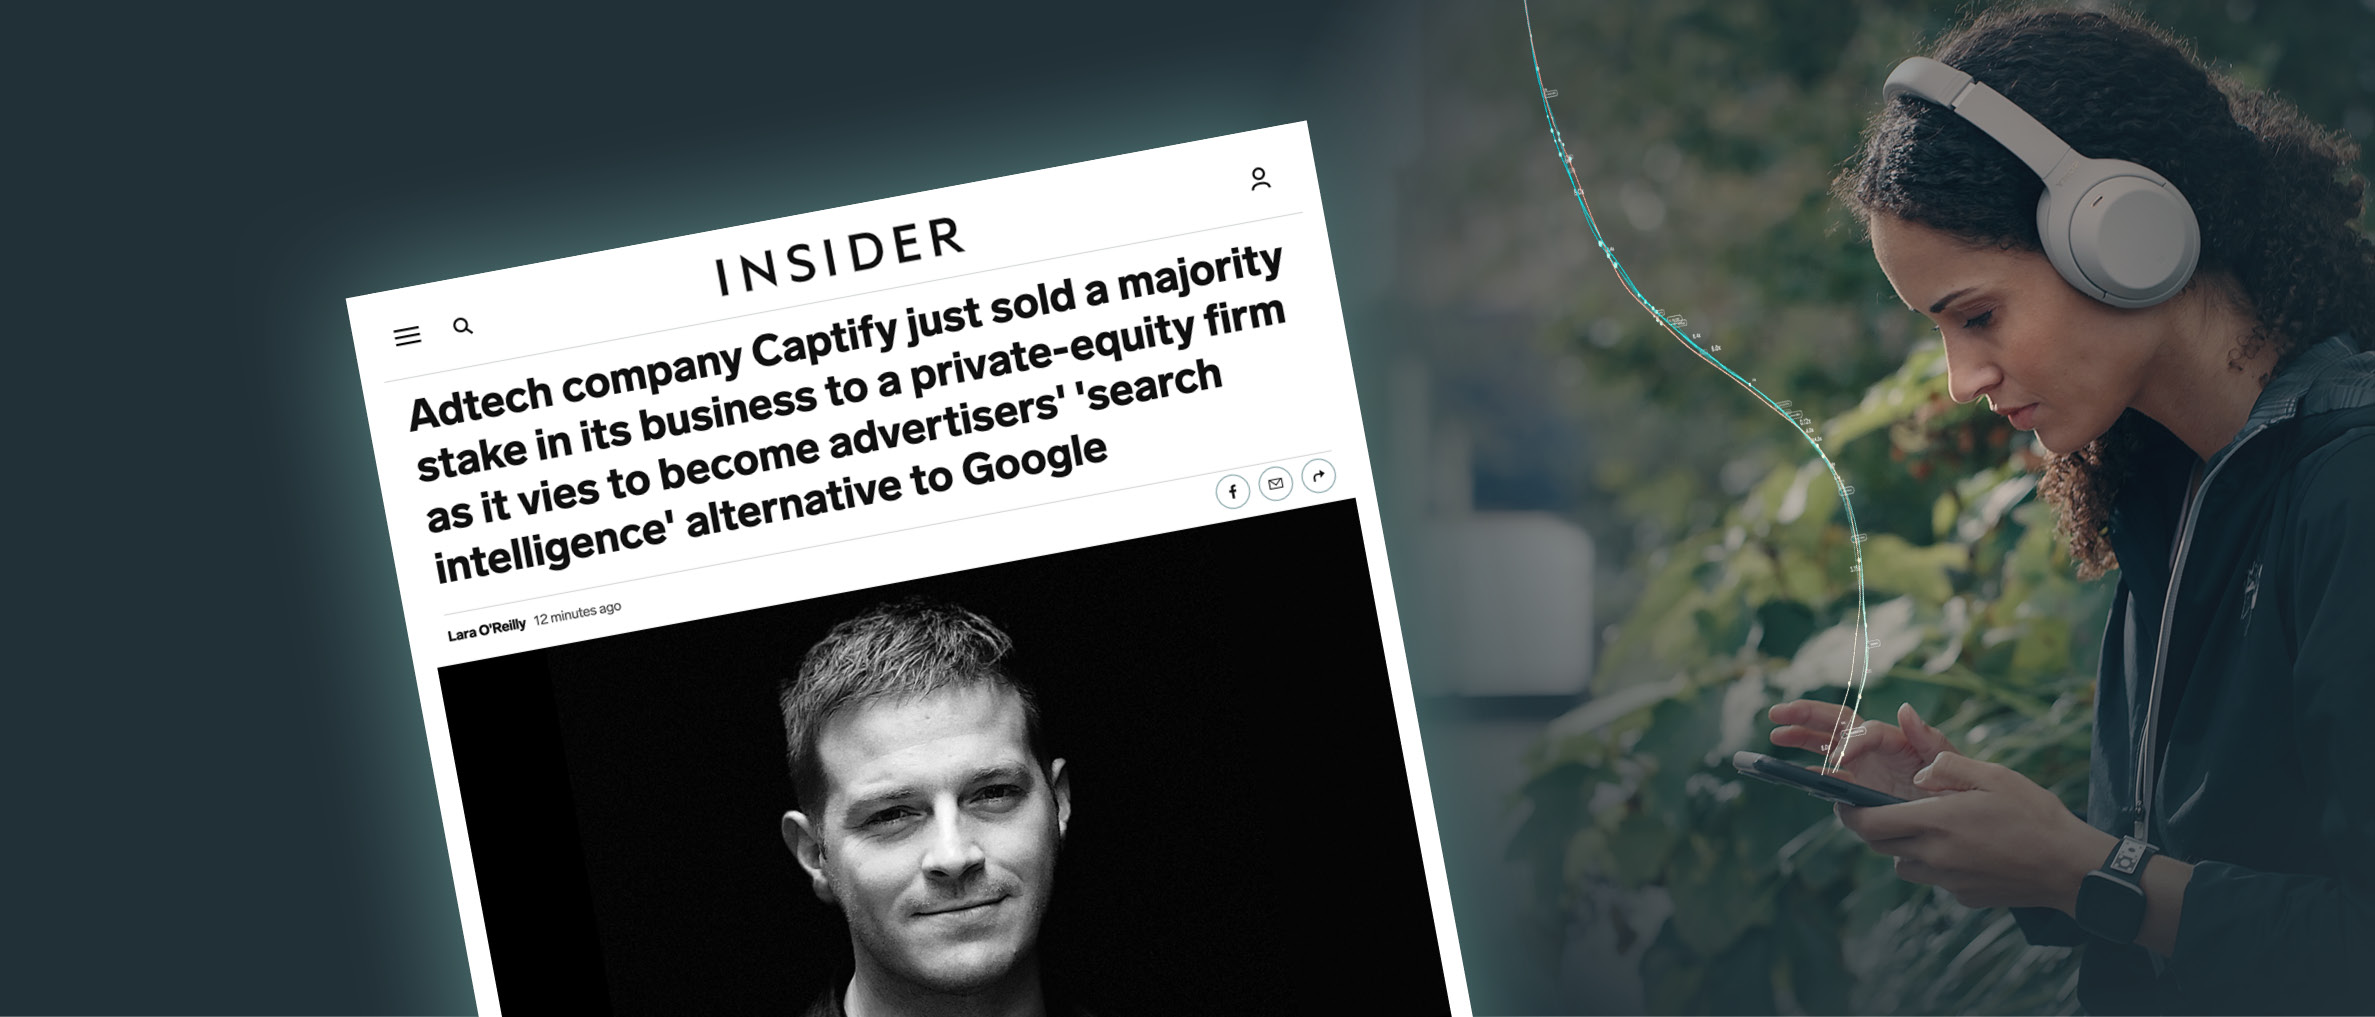 Business Insider: Adtech Company Captify Just Sold A Majority Stake In Its Business To A Private-equity Firm As It Vies To Become Advertisers' 'Search Intelligence' Alternative To Google